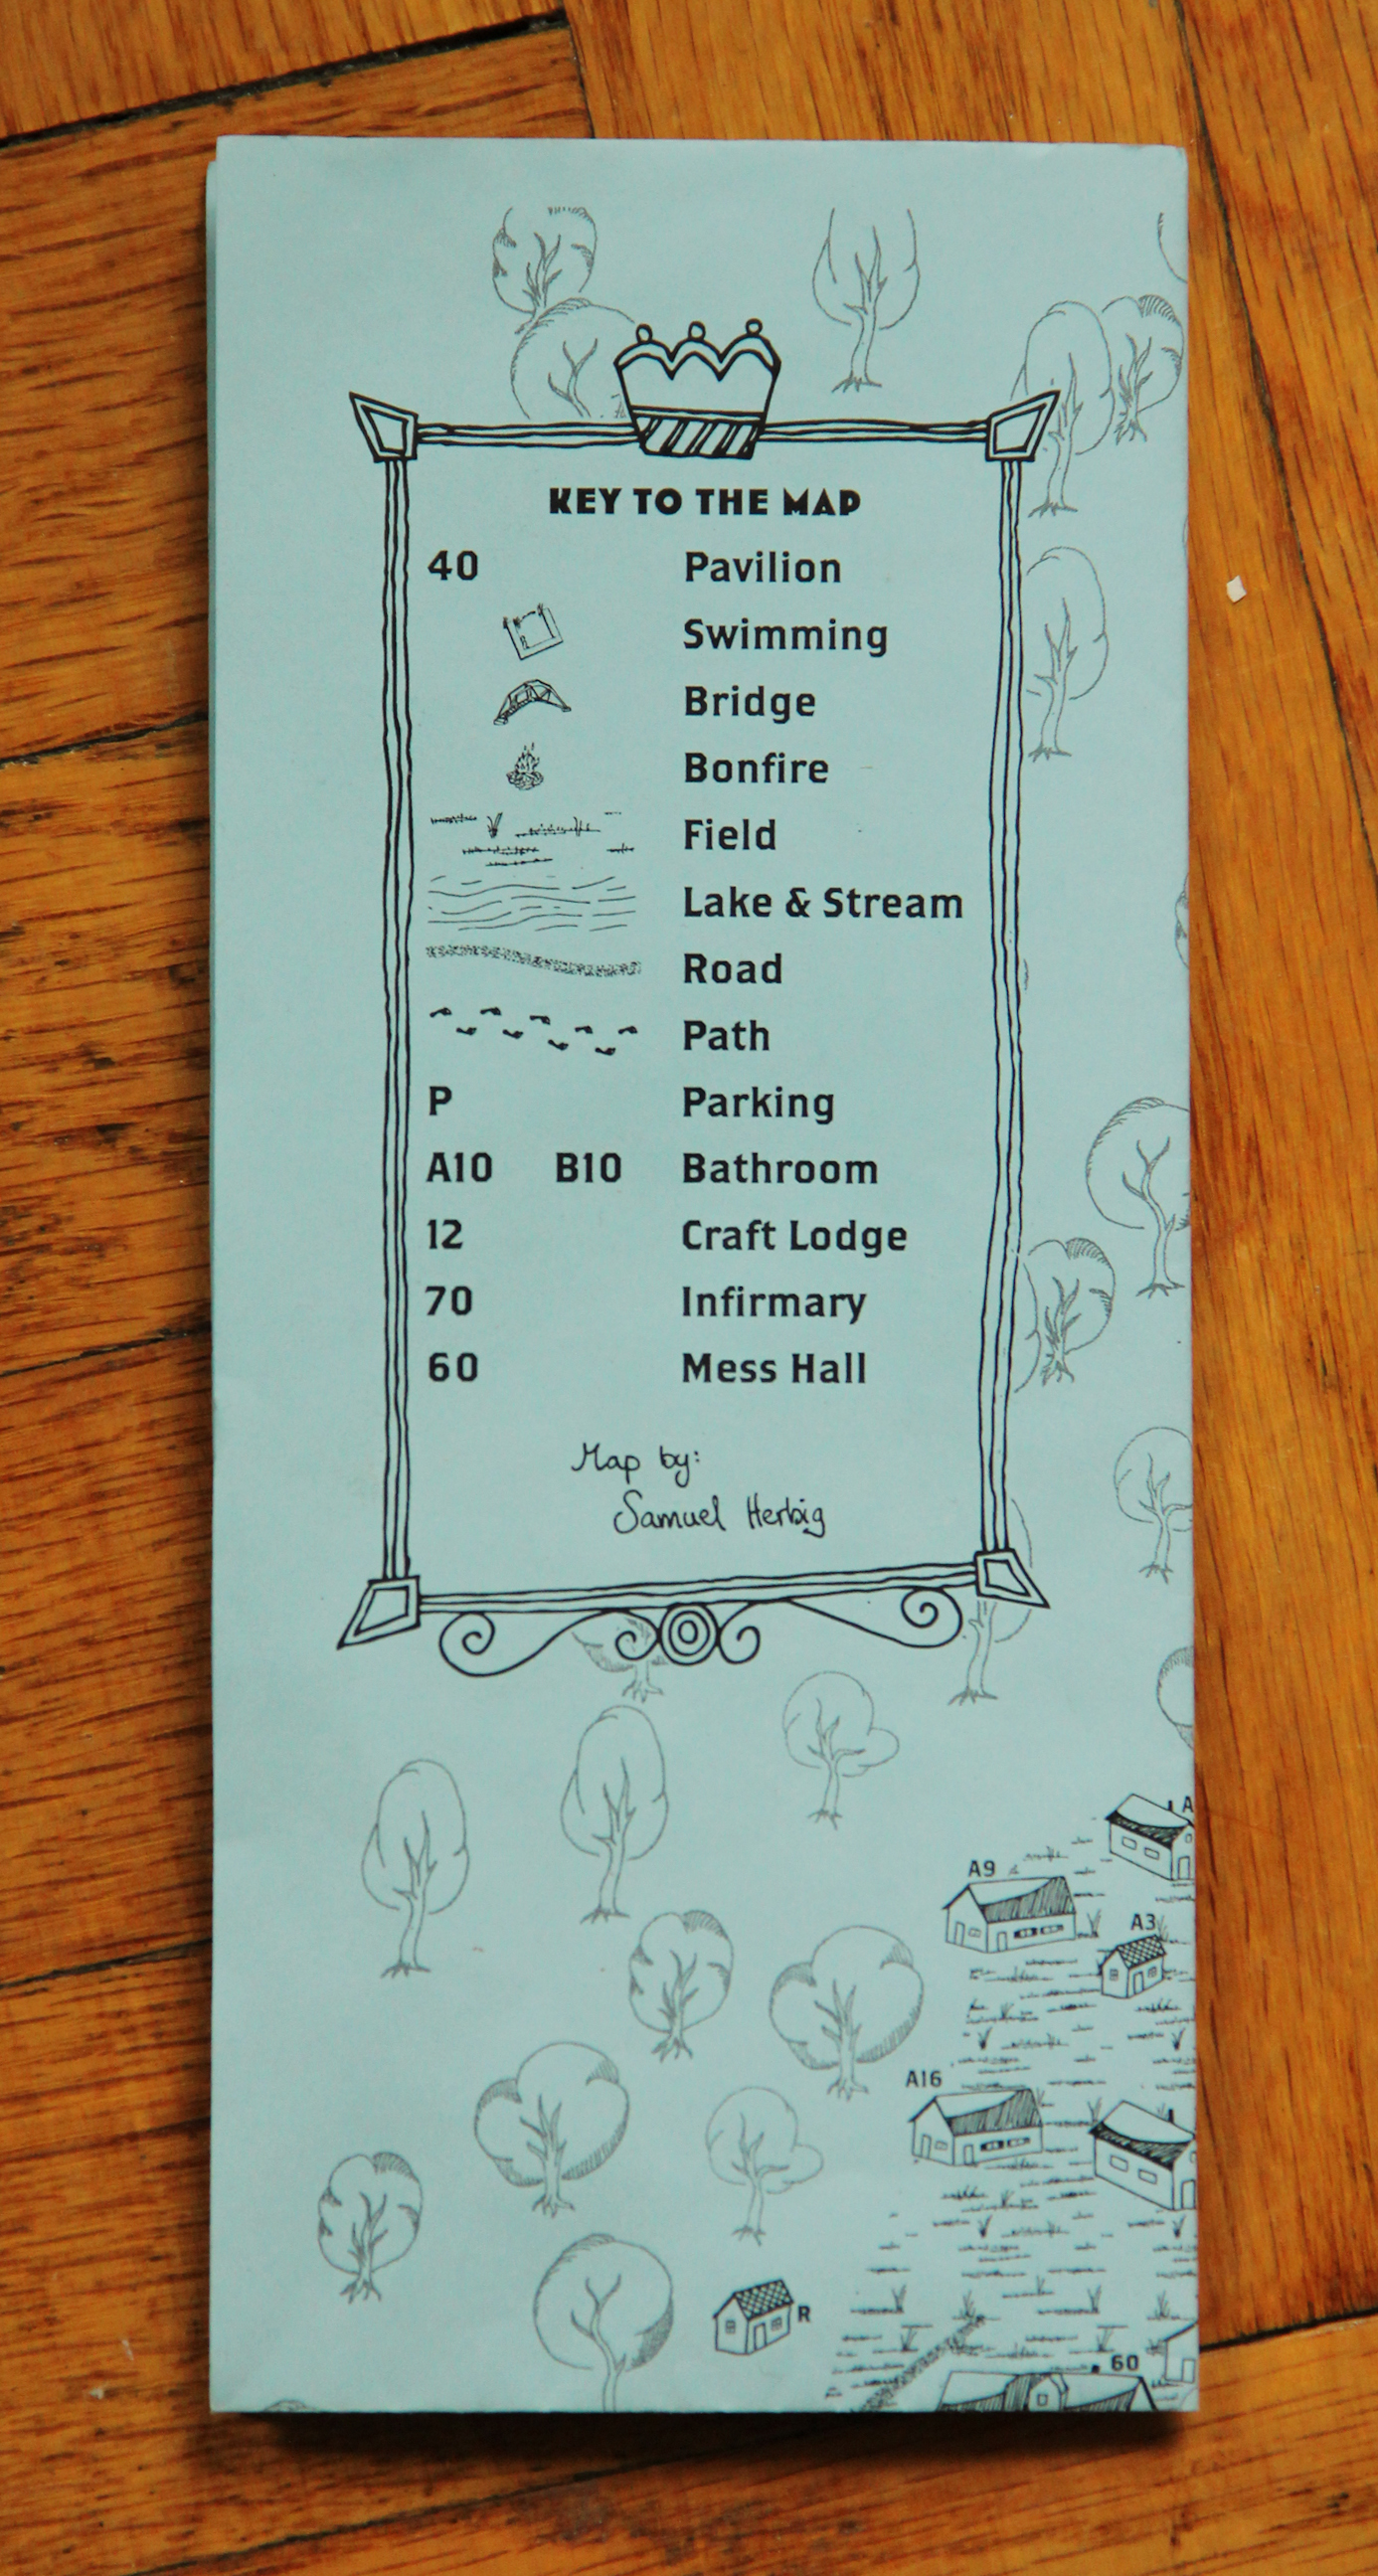 Map Key on the printed Map